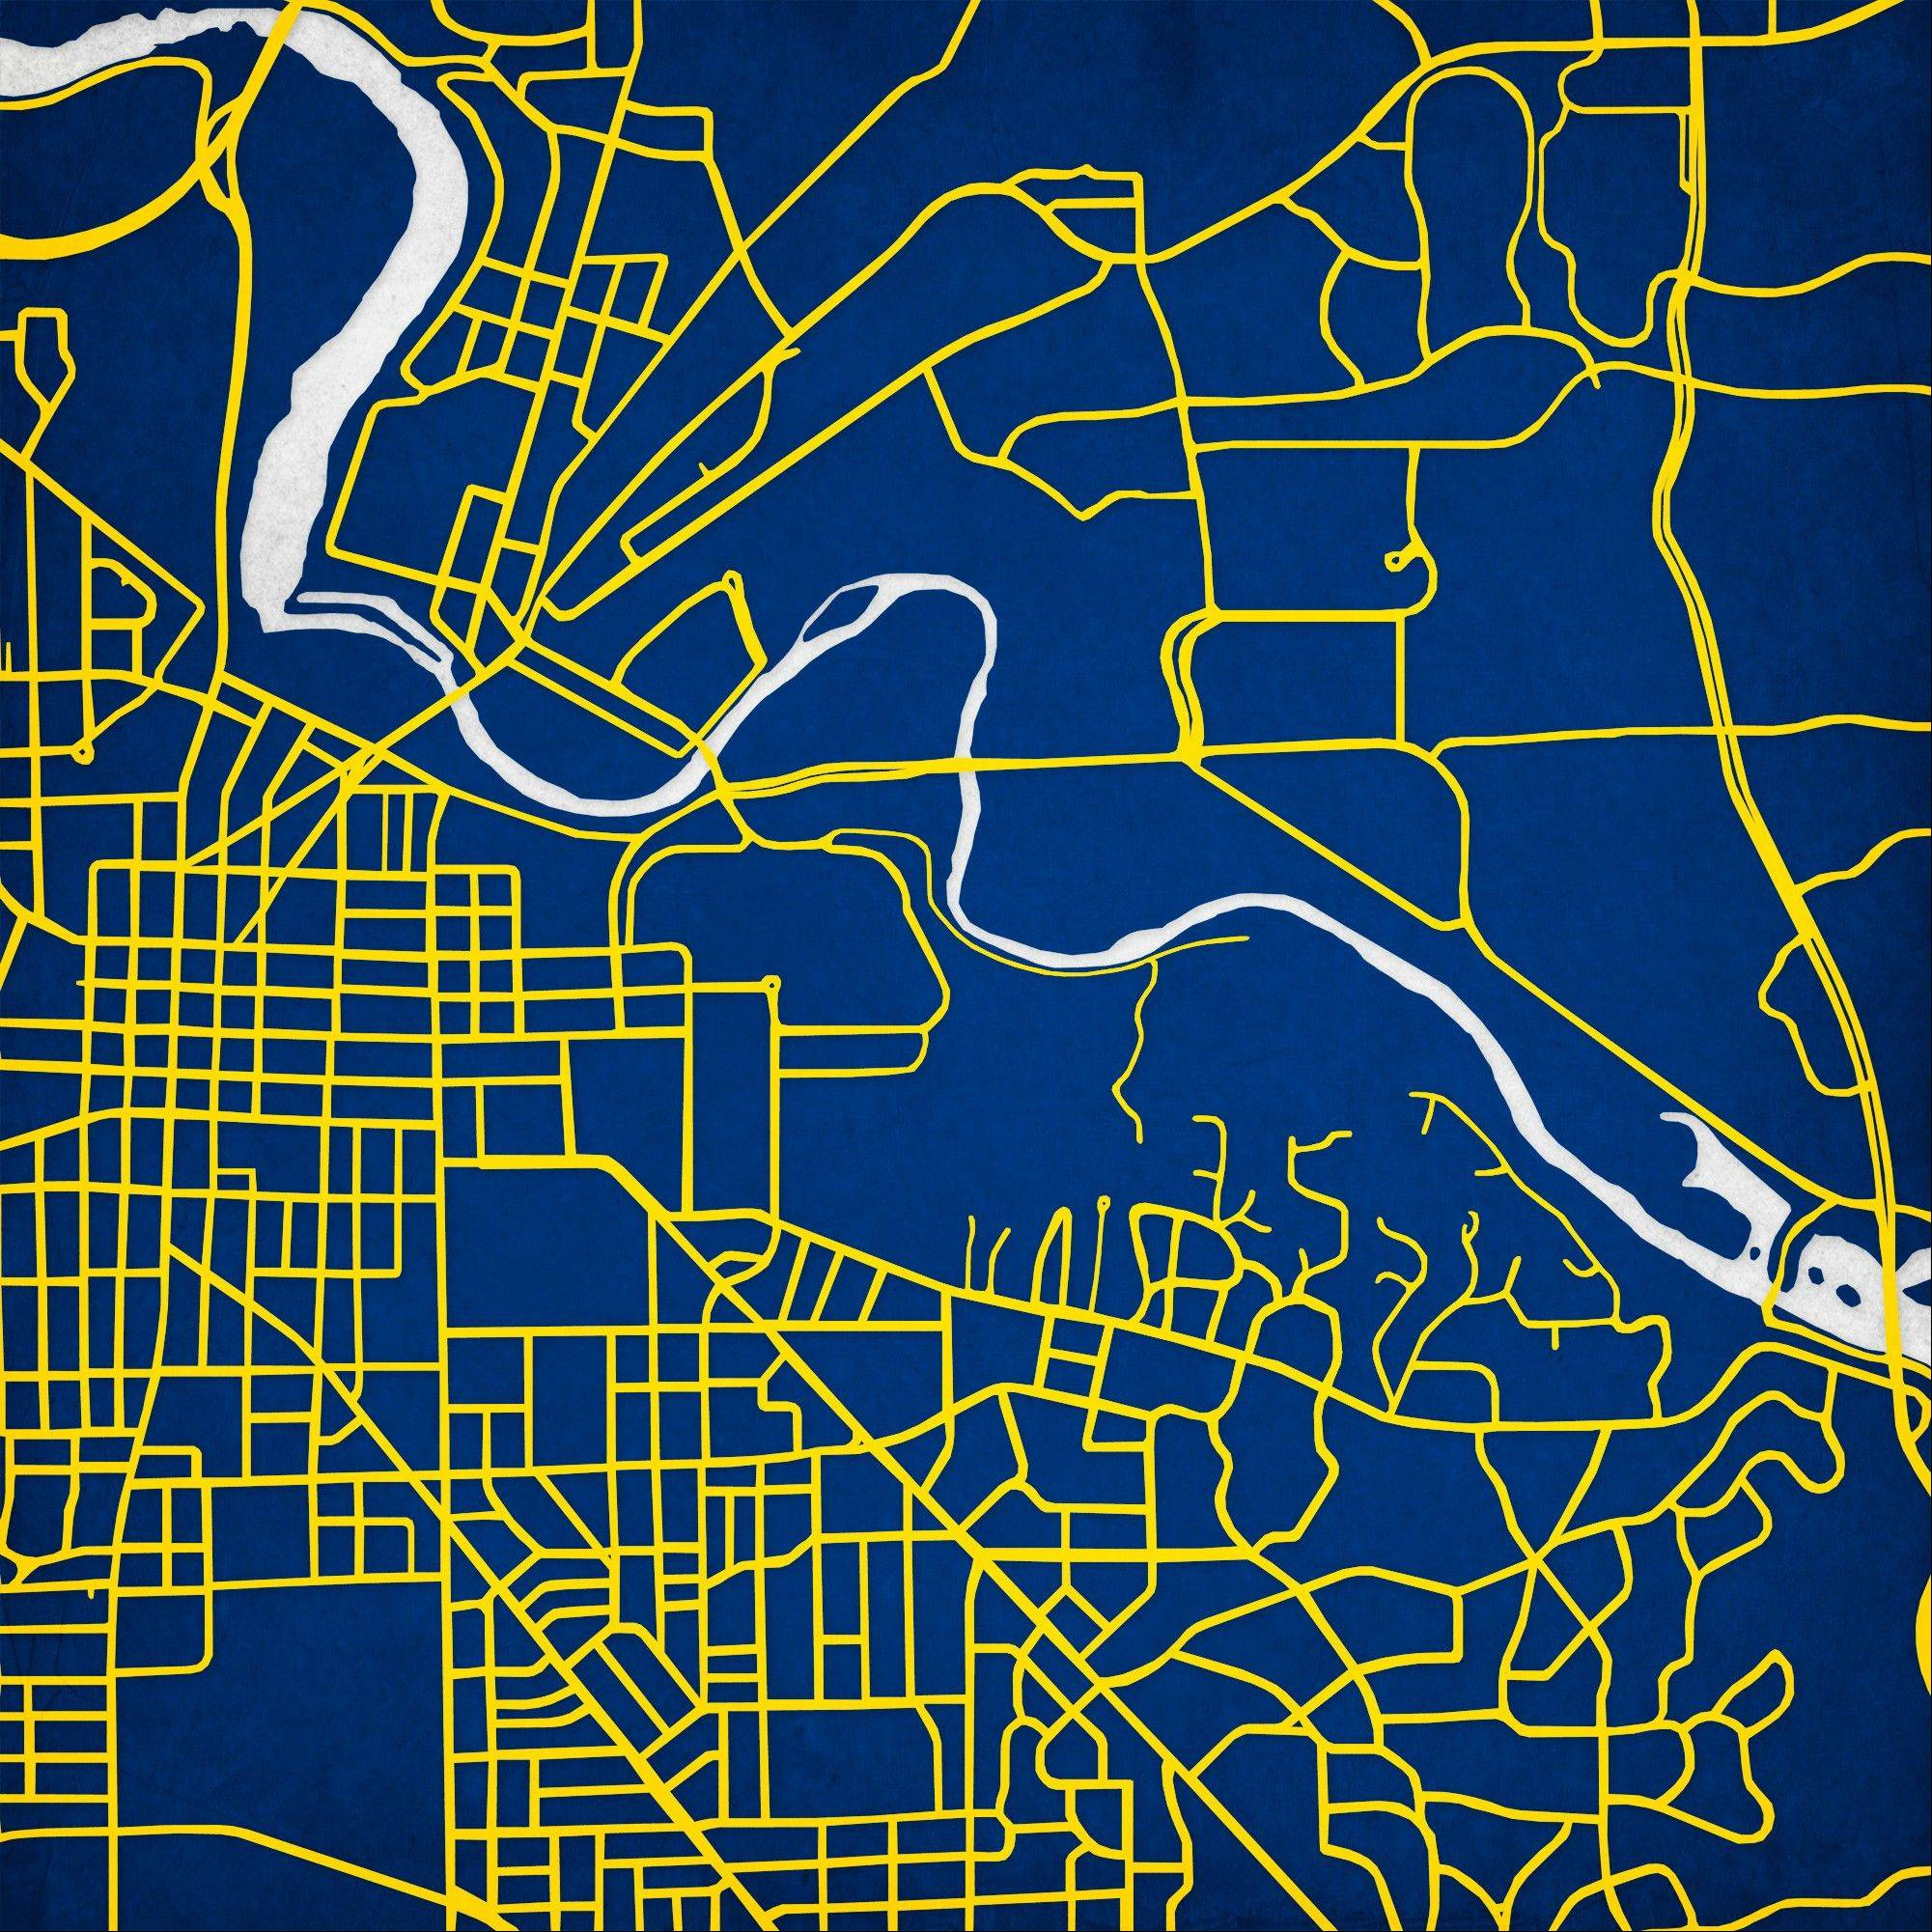 A map of the University of Michigan is shown from Atlanta-based City Prints Map Art.